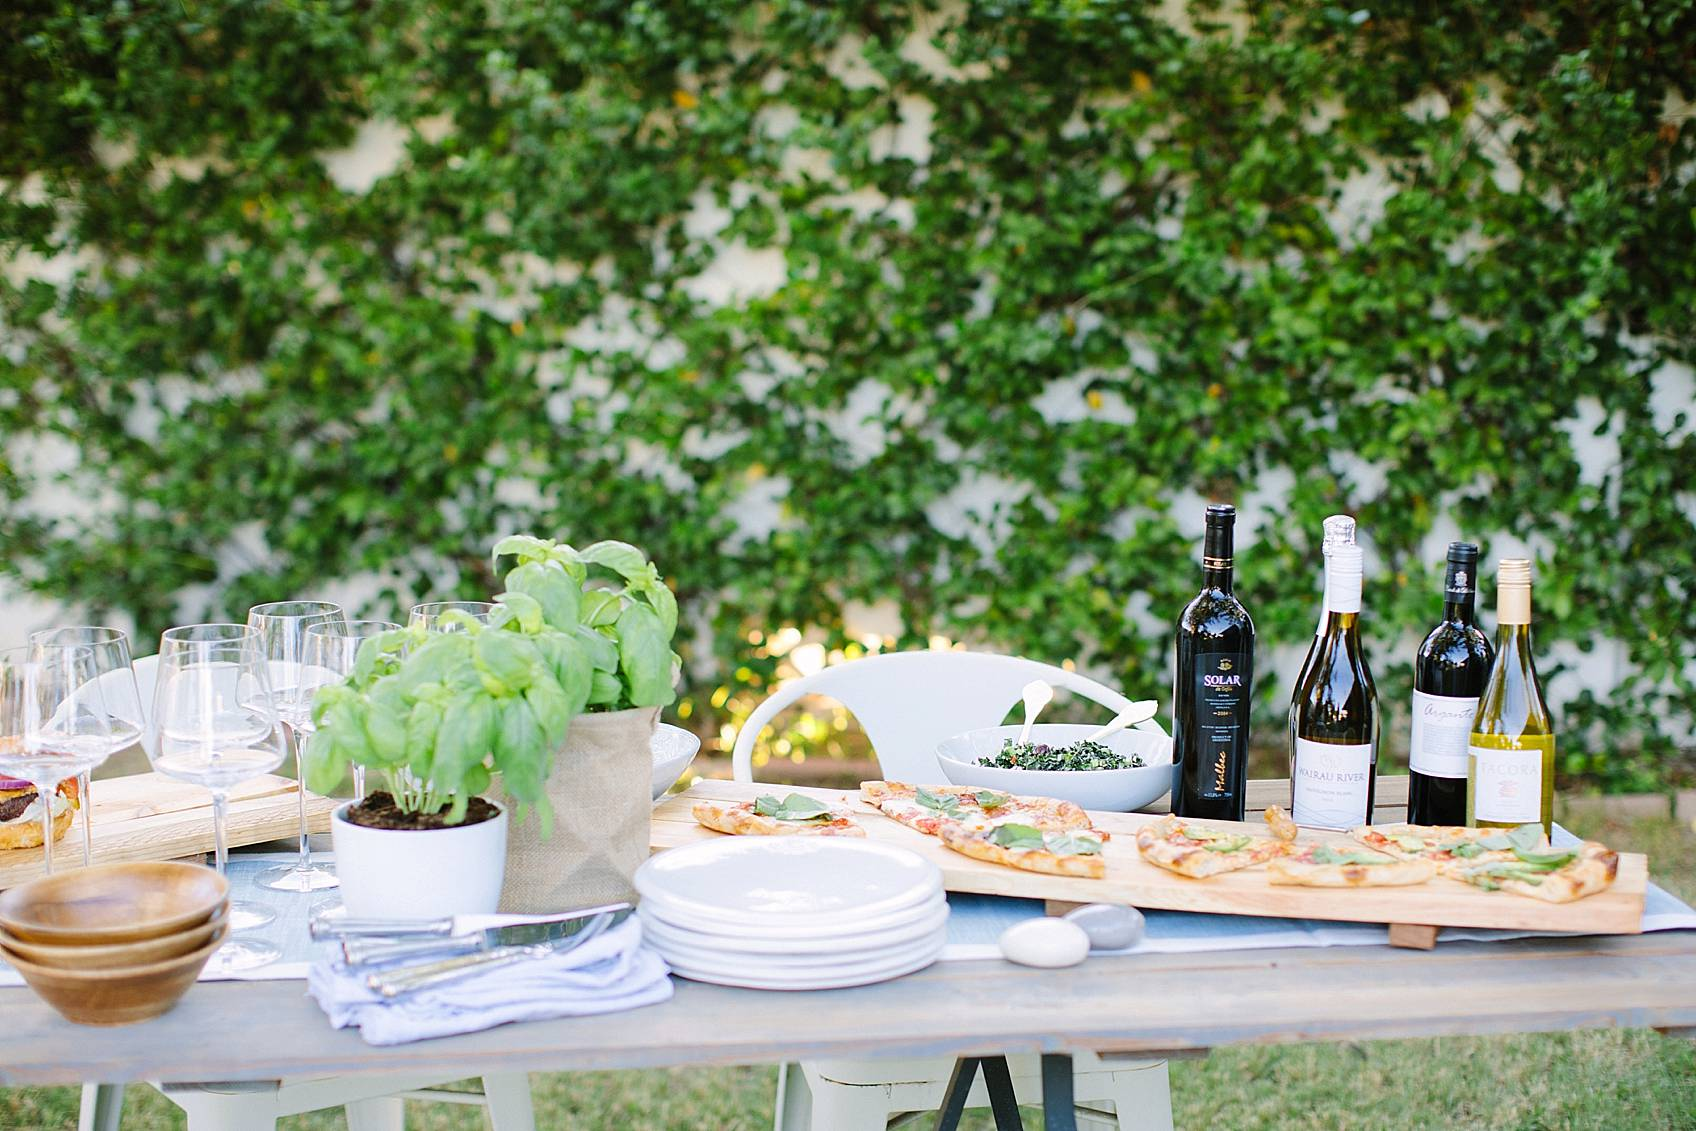 jasmine vine wall in background of set table featuring wine and boards of pizza and salad